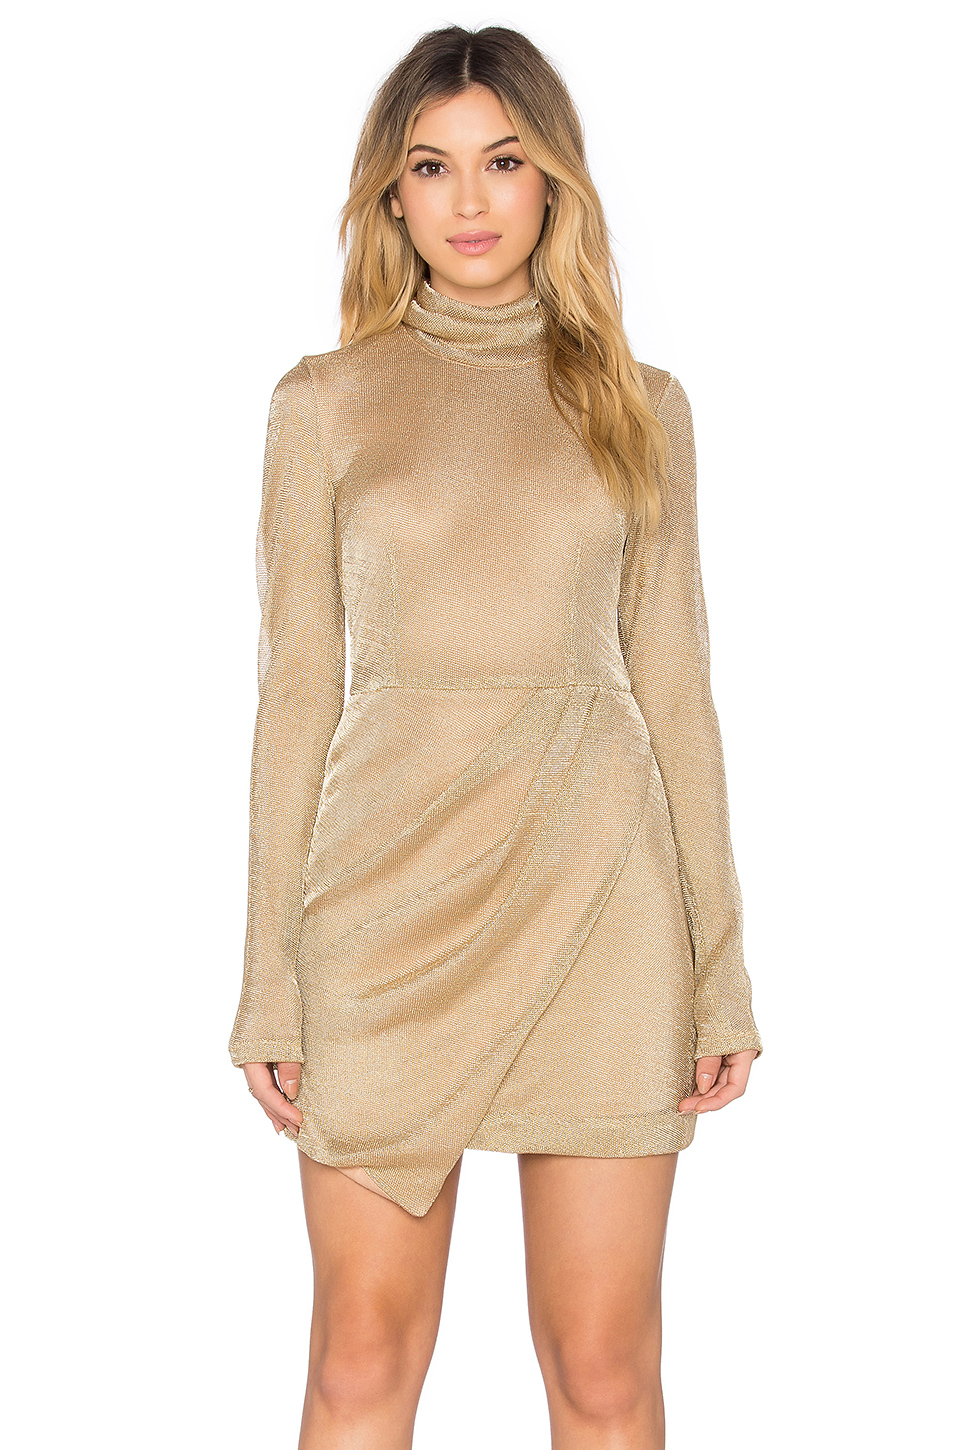 10 Best Gold Dresses For New Years Eve 2018 | Become Chic